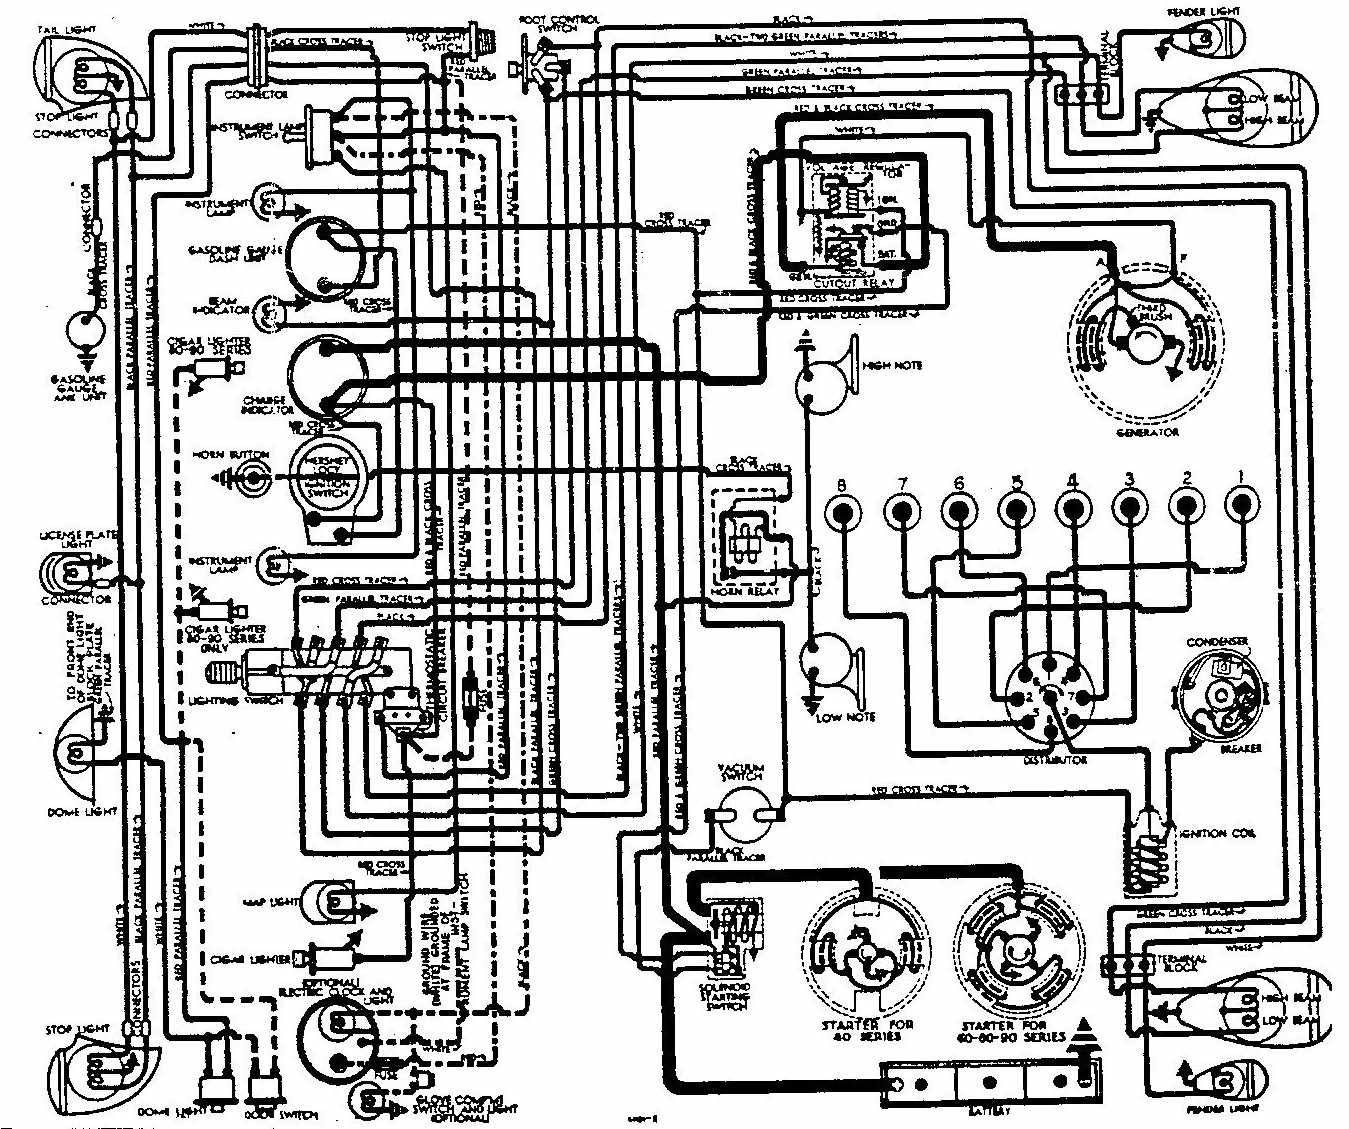 Wiring Diagram For 3930 New Holland Tractor | Wiring Liry on